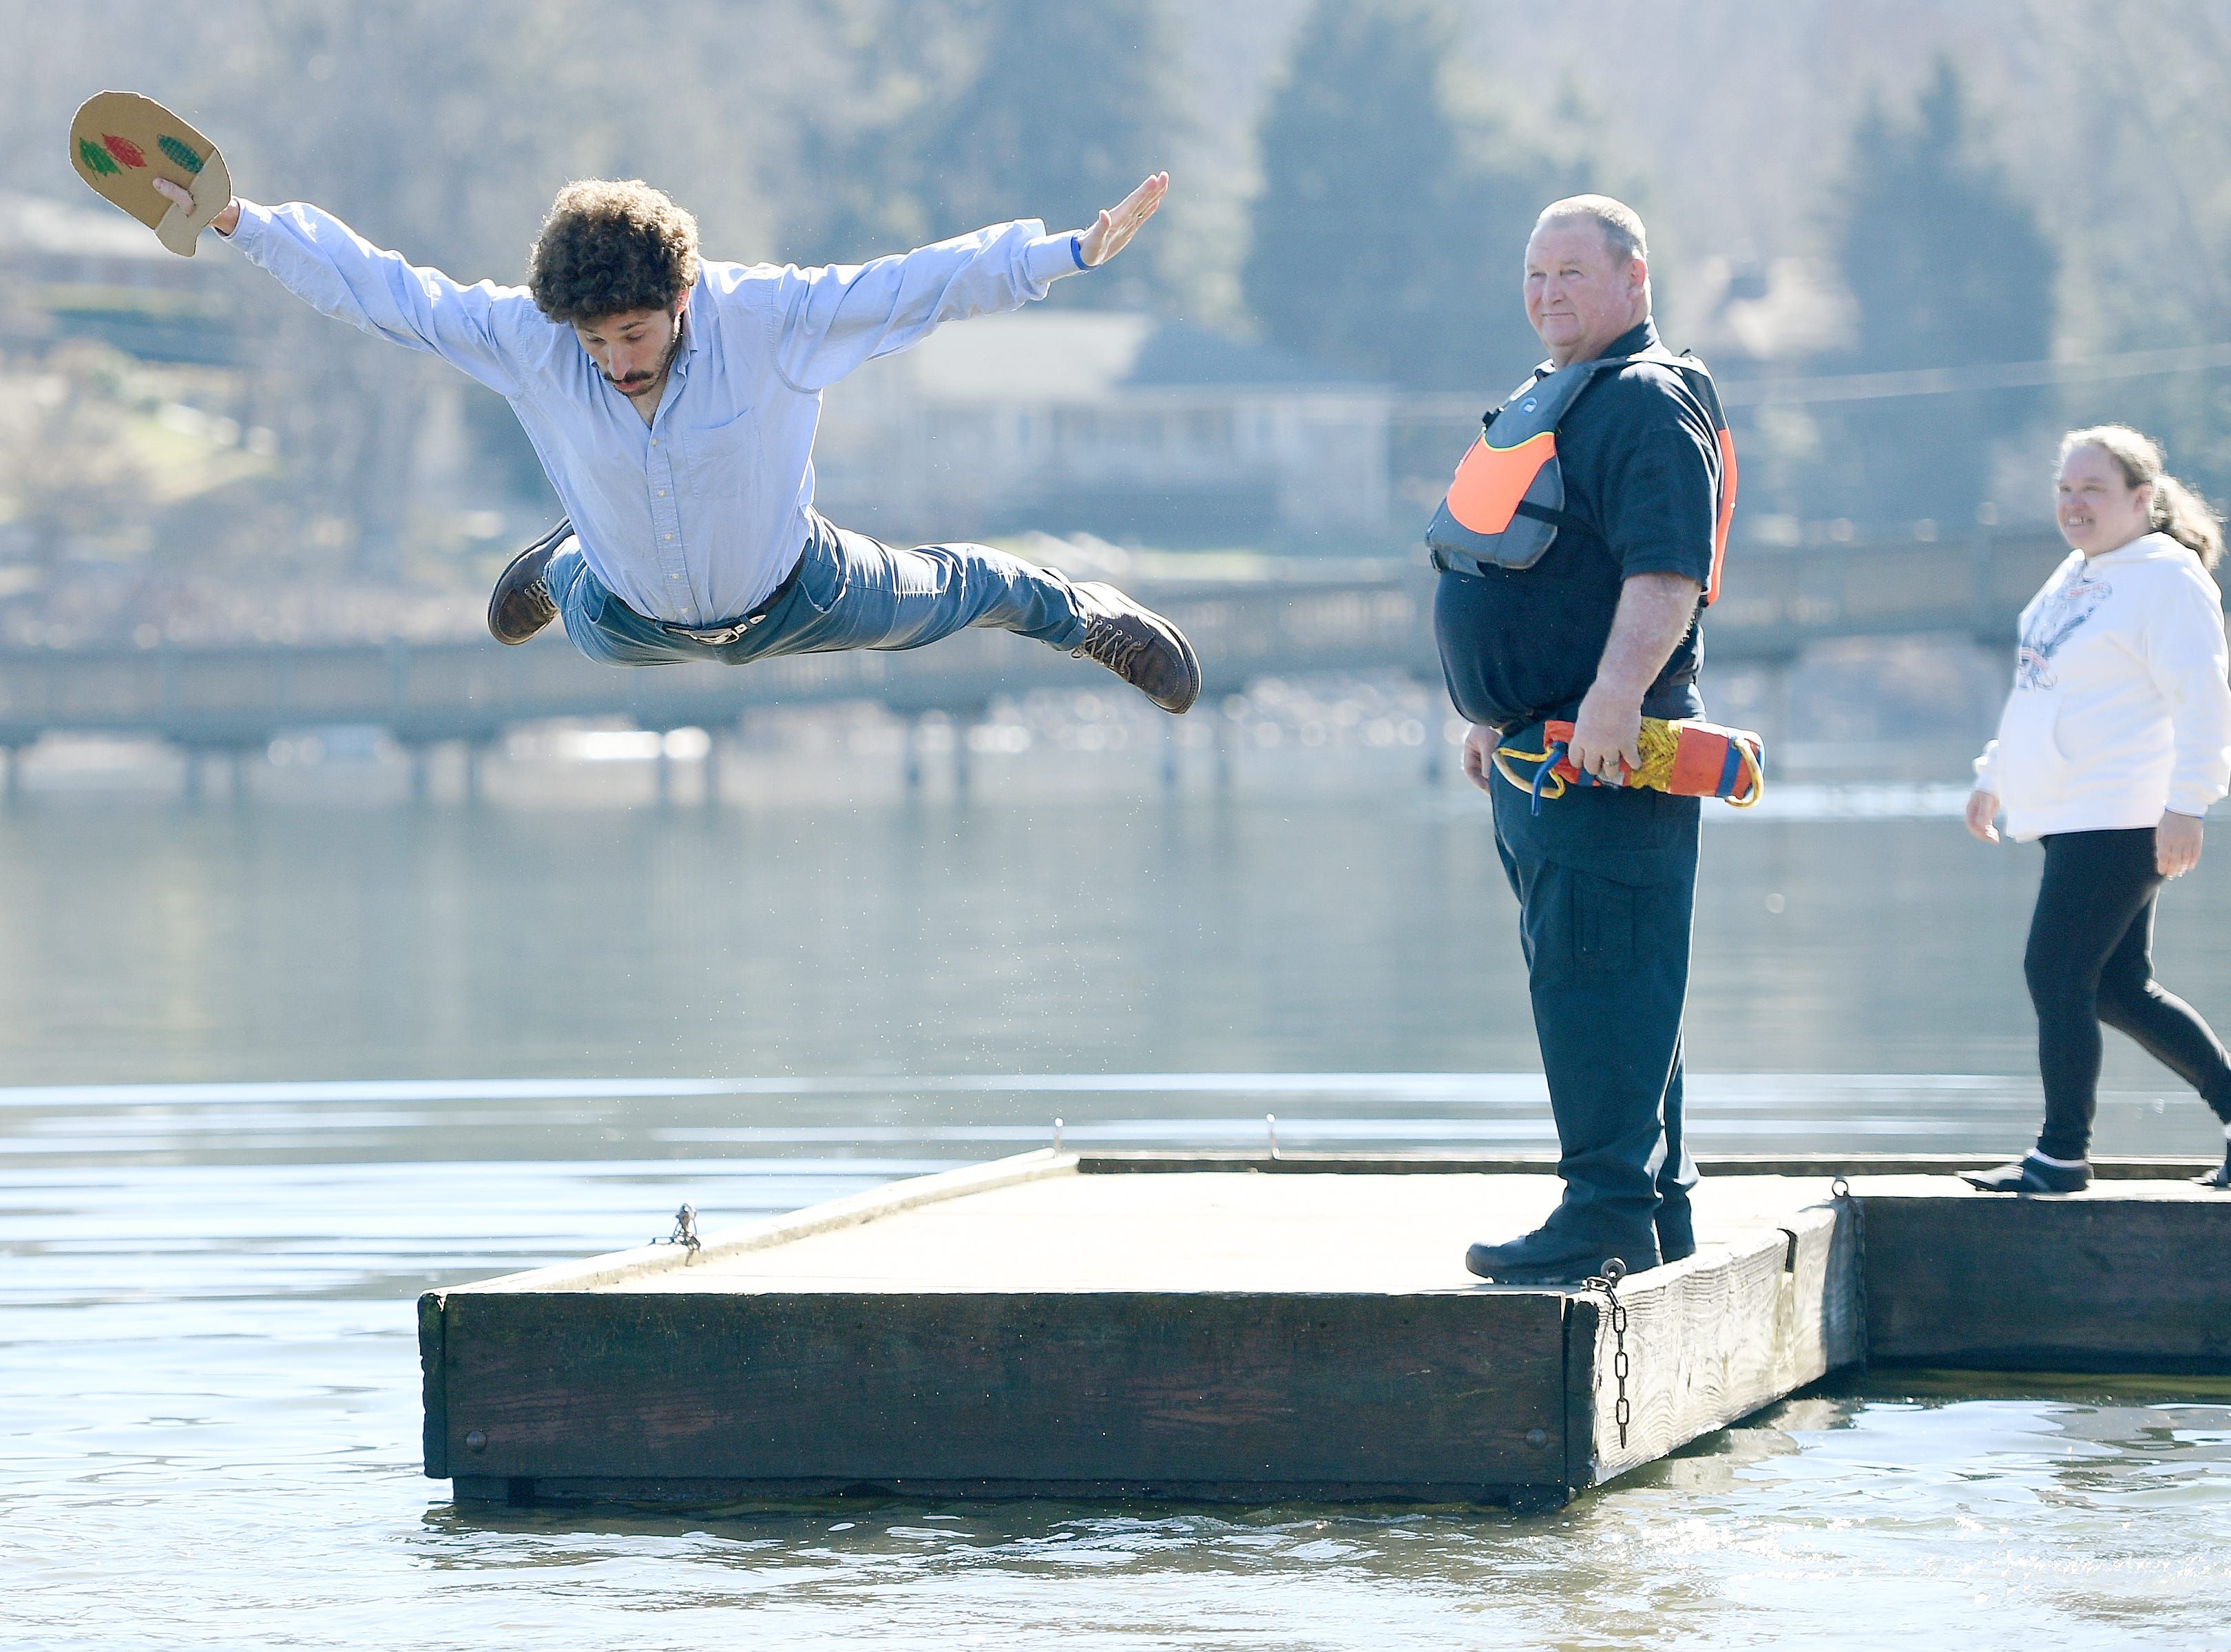 Andrew Bowen, dressed as television painting instructor Bob Ross, leaps into the chilly waters of Lake Junaluska during the 7th Annual Plunge at Lake Junaluska Conference and Retreat Center on Feb. 2, 2019. Bowen won the costume contest and was also a top fundraiser for the event.